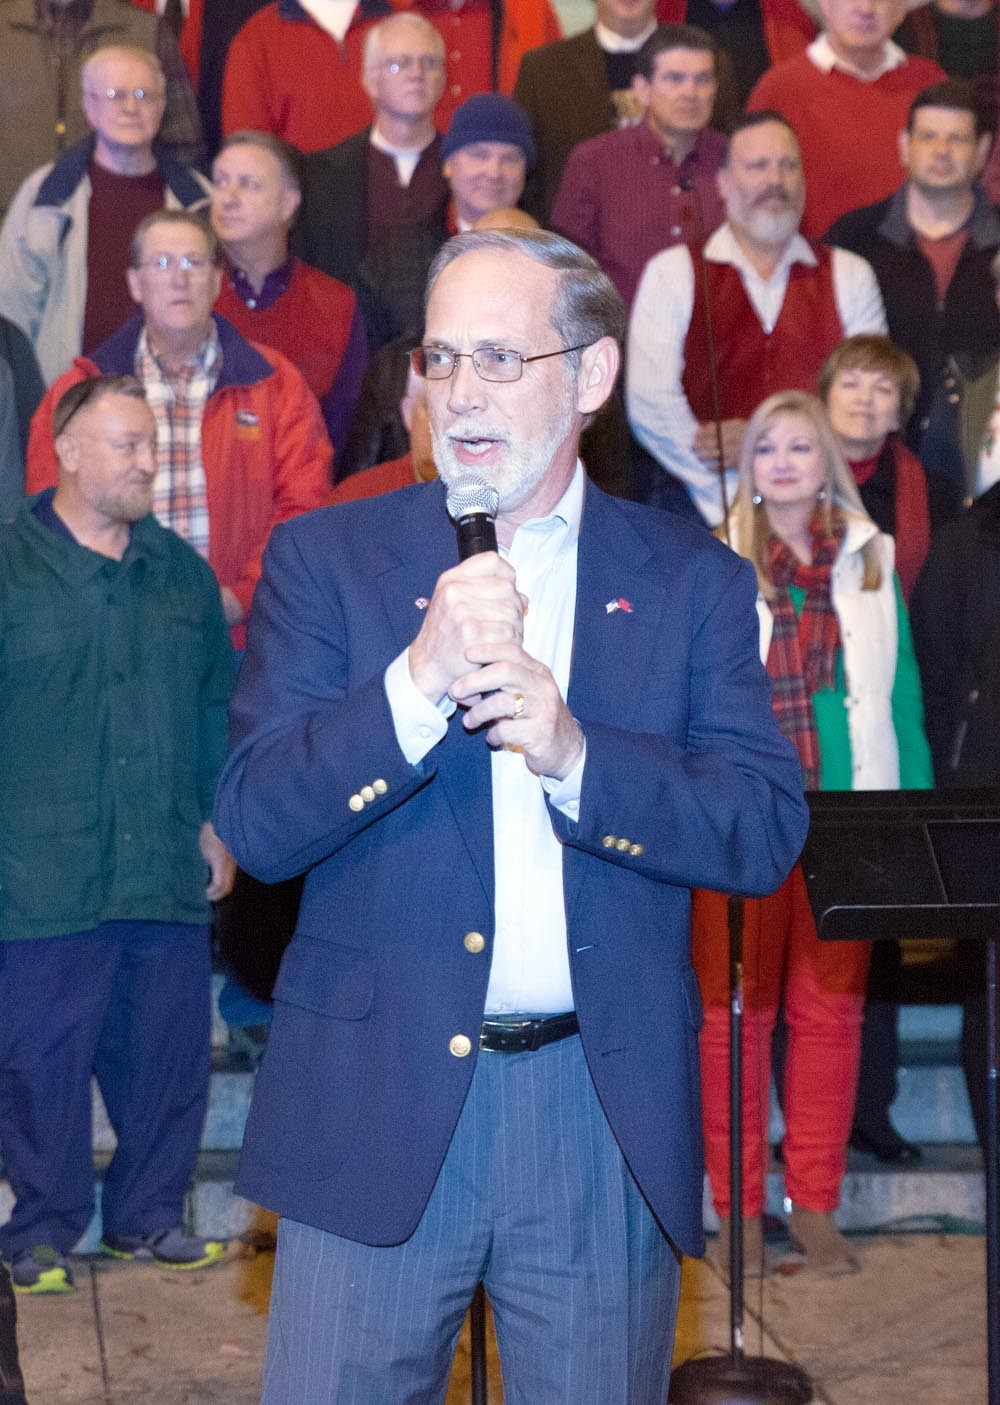 BRADLEY COUNTY MAYOR, D. Gary Davis, welcomes the crowd to the kickoff of the Community Tree Lighting Festivities on Friday.